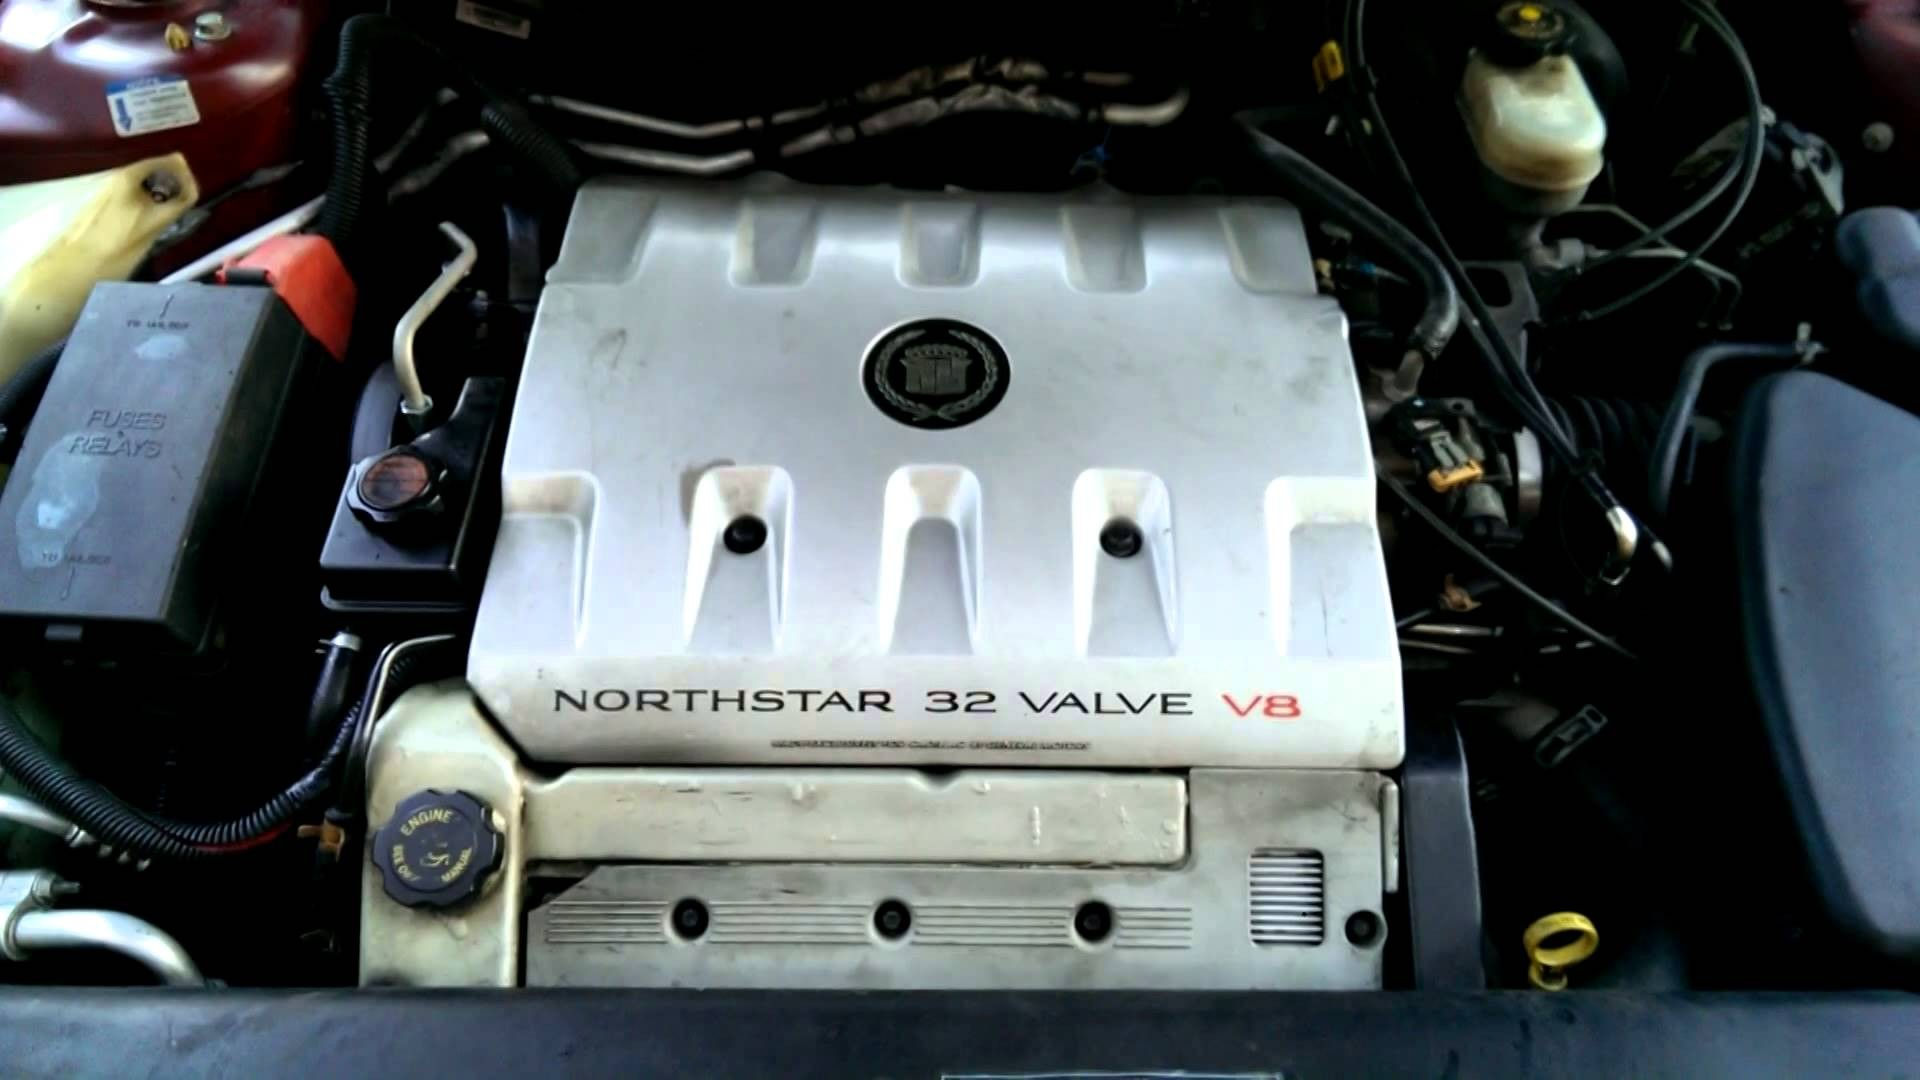 4 6 Northstar Engine Diagram Cadillac Buildup Hot Rod North Star Overheating Of